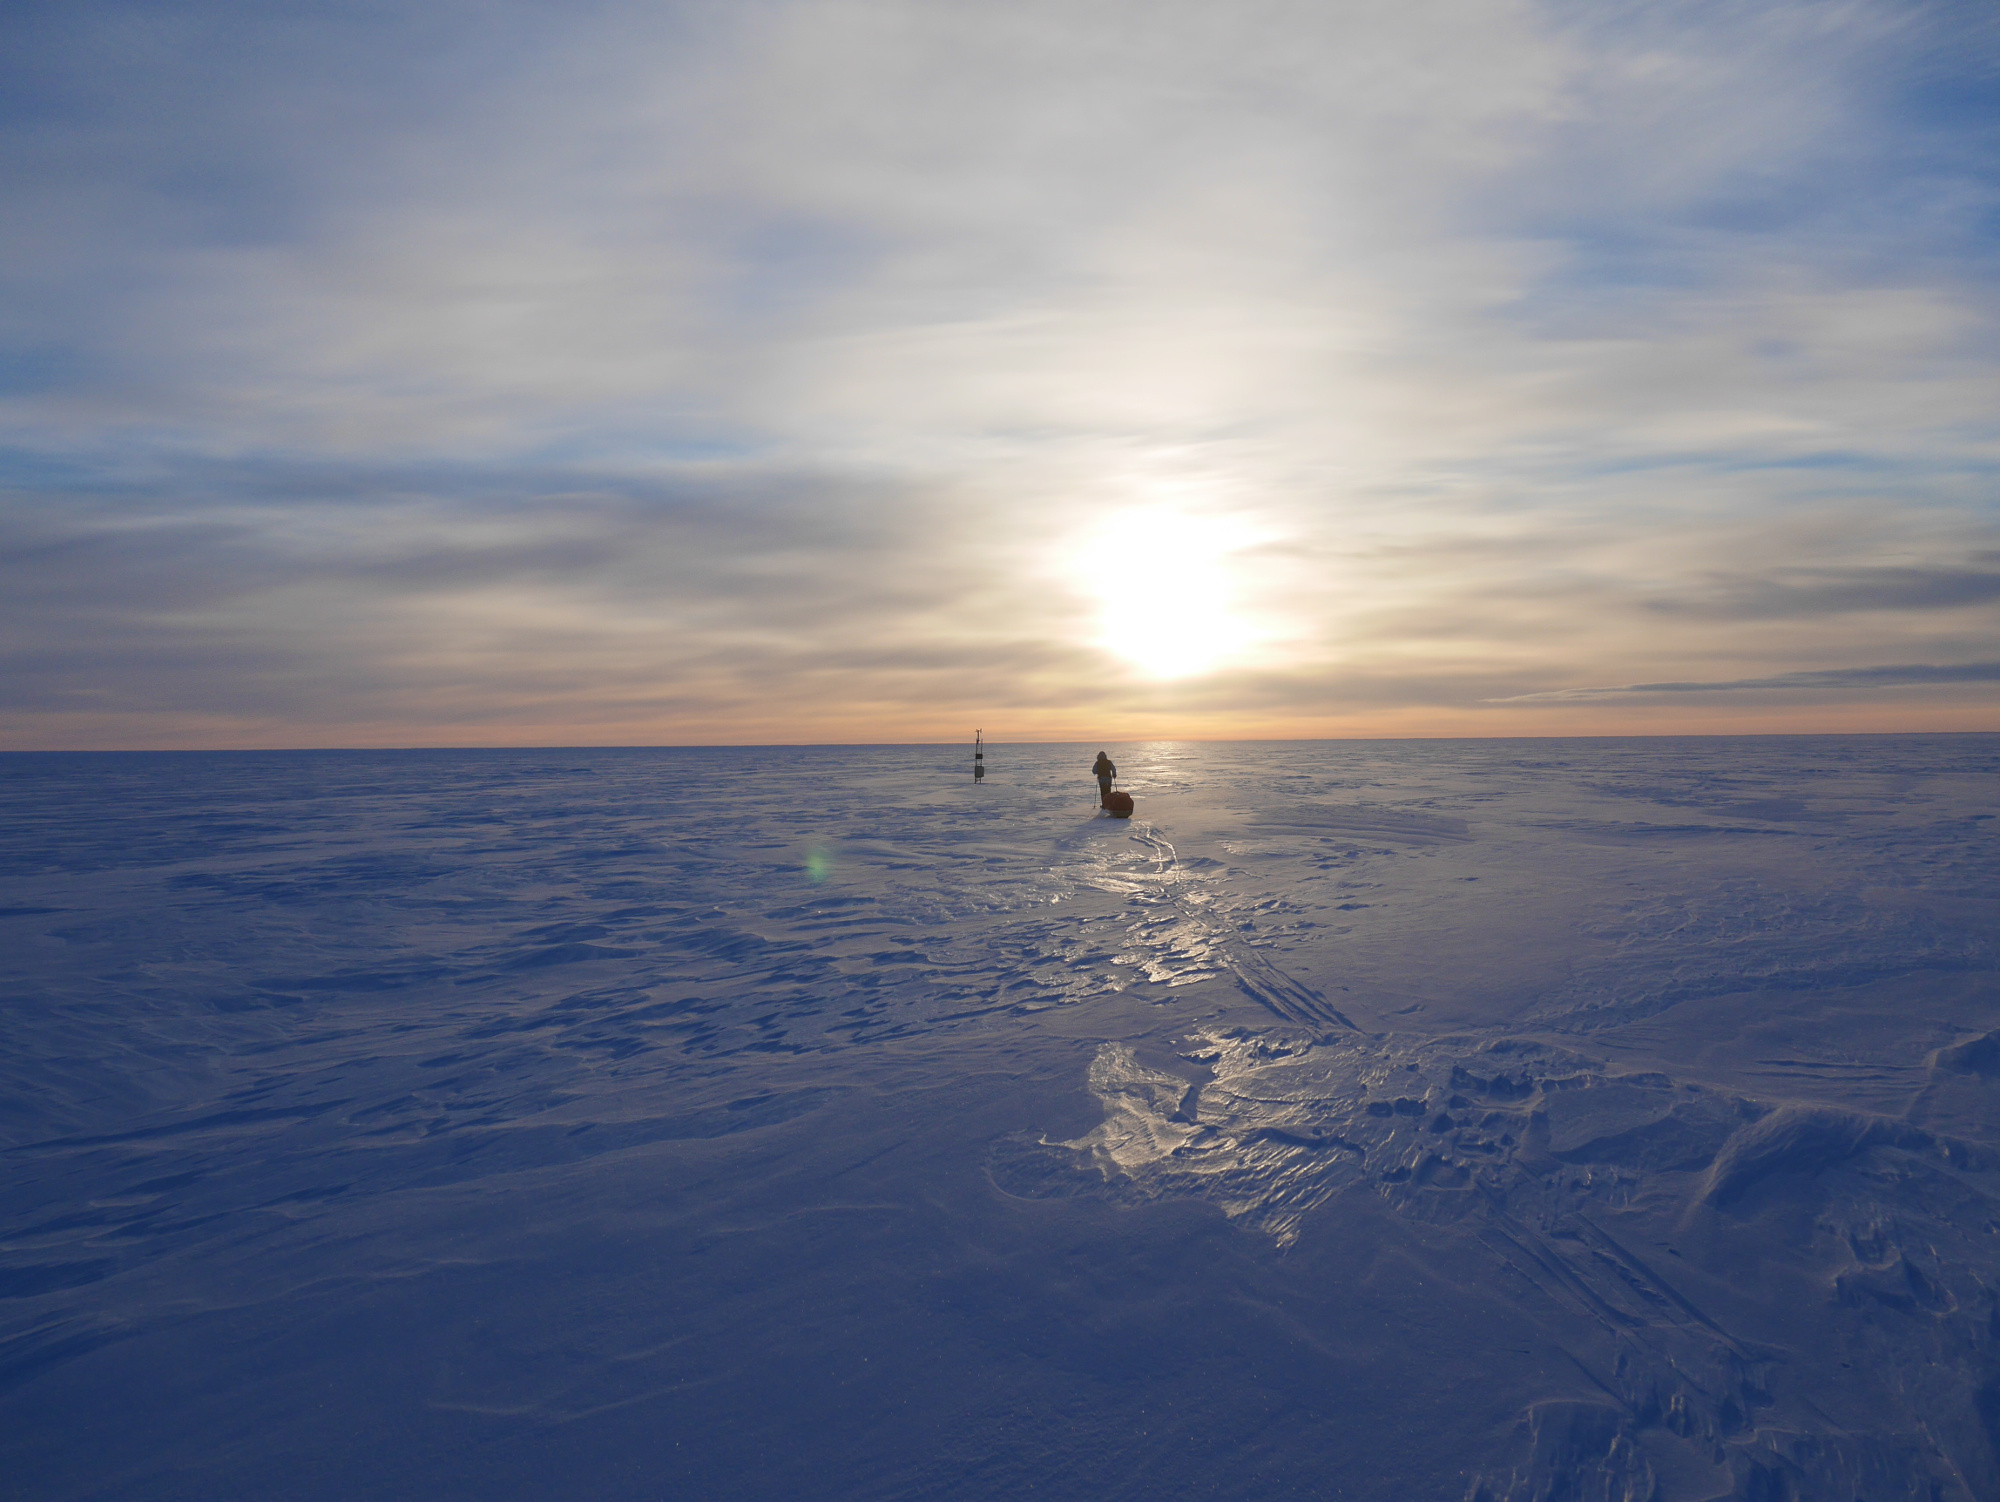 Explorer attempts first unsupported Antarctic crossing